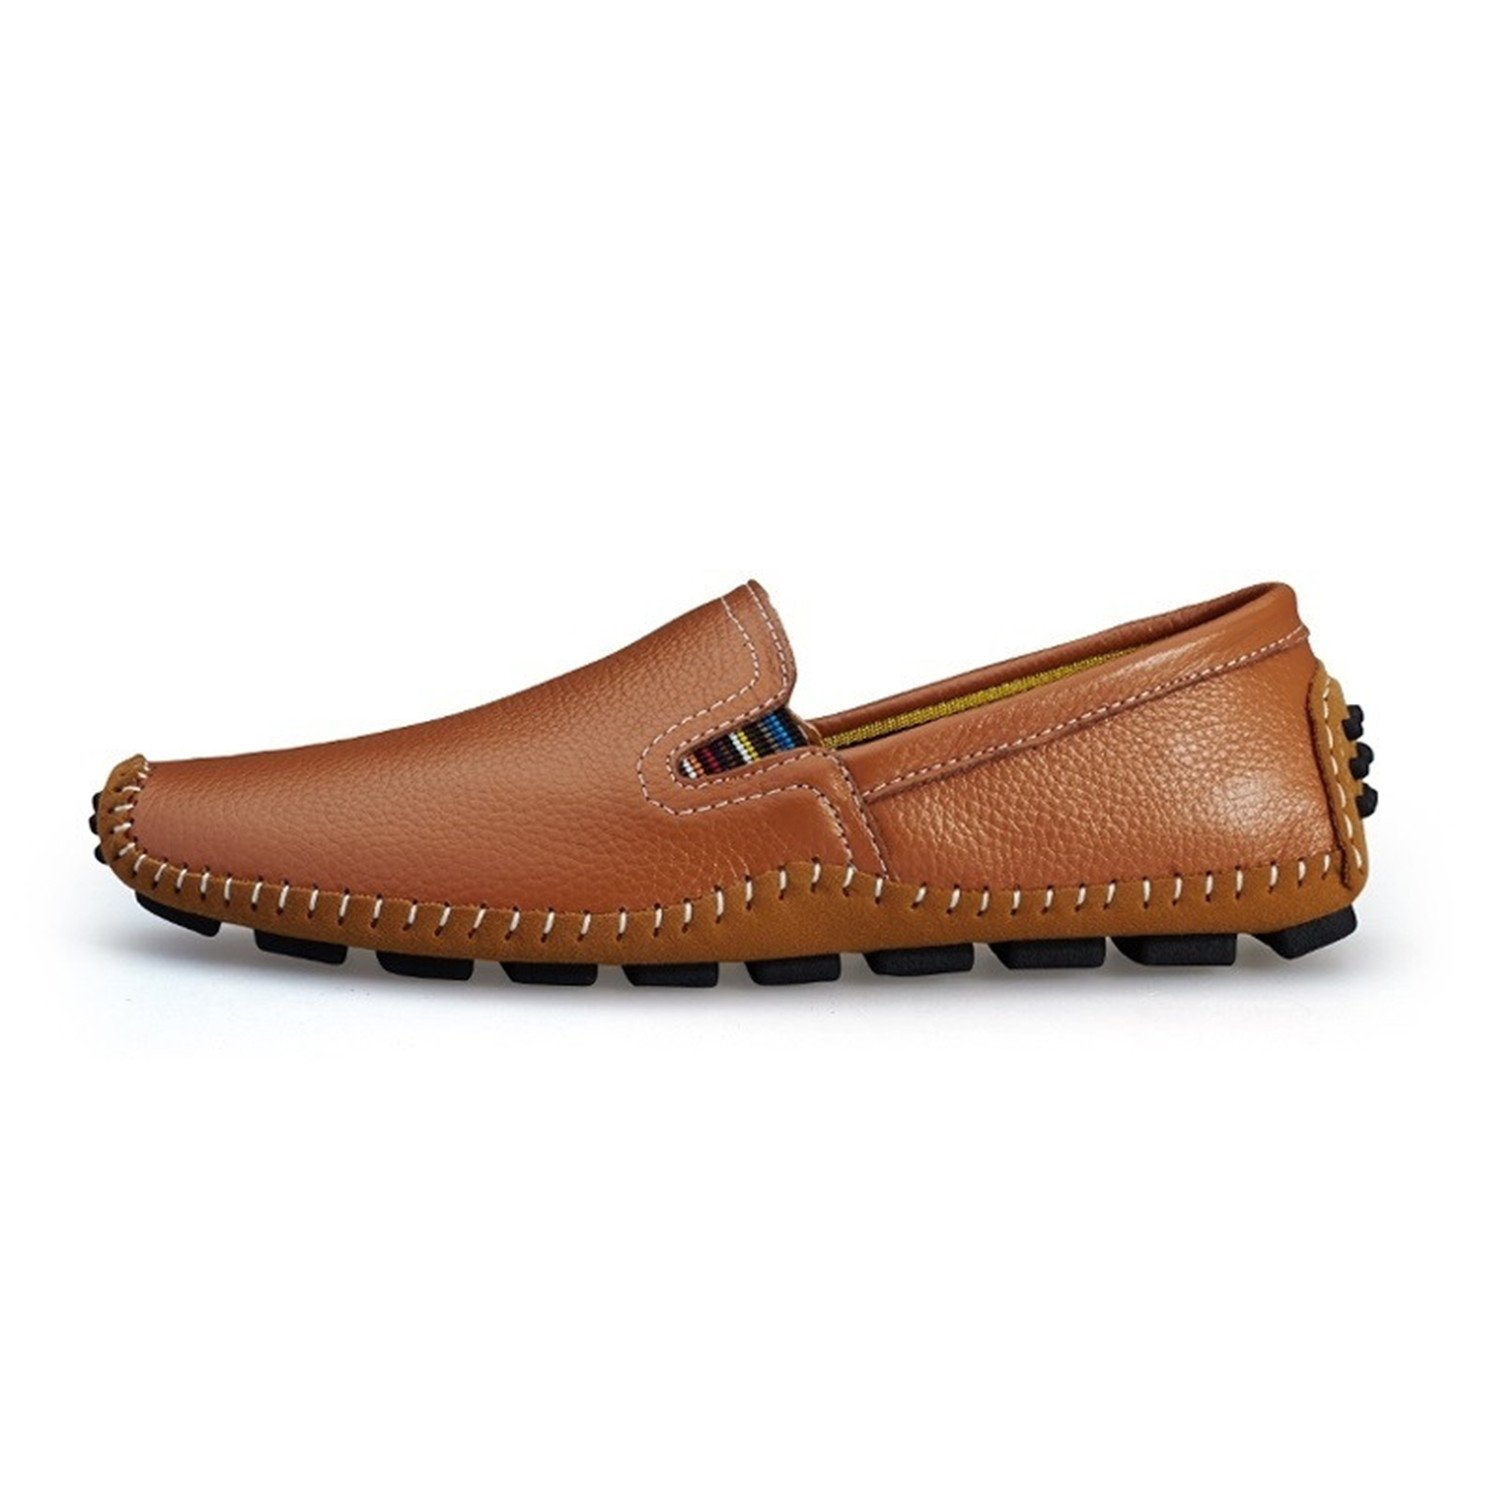 Handmade Soft Men's Natural Leather Shoes Casual Slip On Driving Loafers Good Stitching